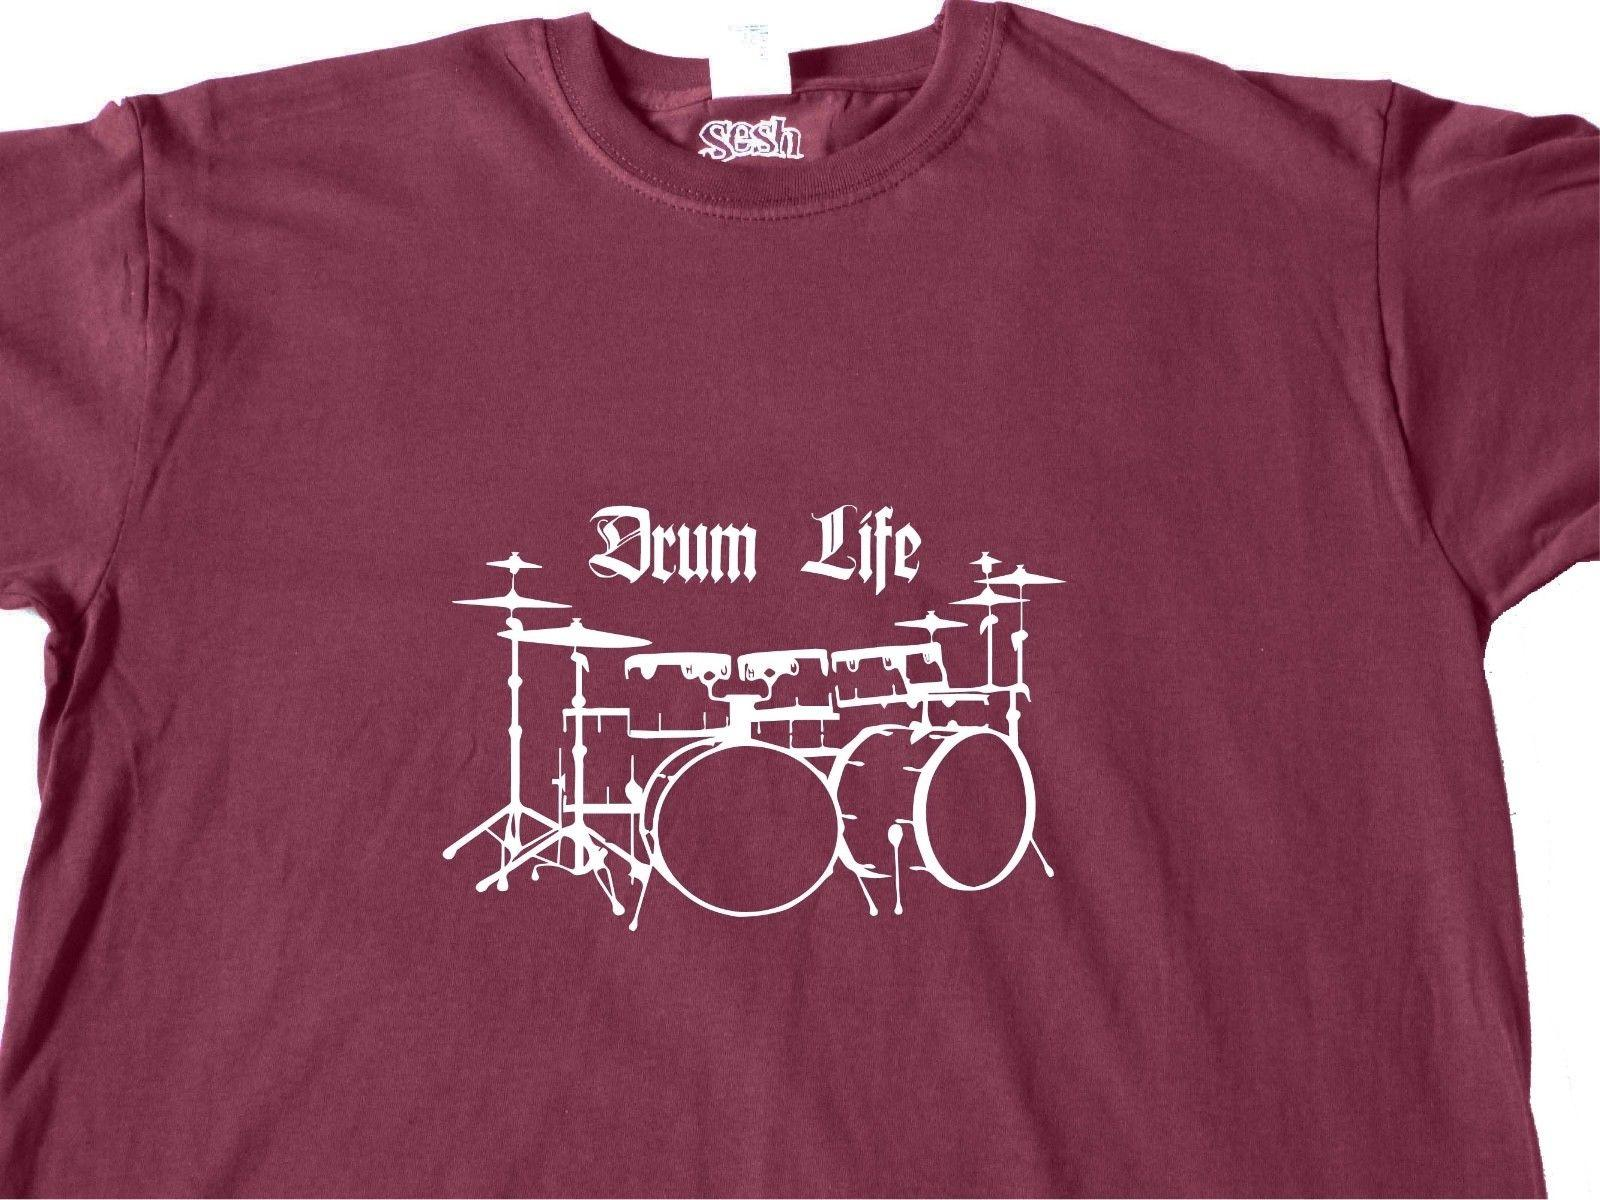 f9cec198 COOL T SHIRT Drum Kit HANDMADE Drummer Music Instrument Band Clothes  GiftsFunny Unisex Casual Tshirt Top Buy Tees Funniest T Shirt From  Boophotography, ...